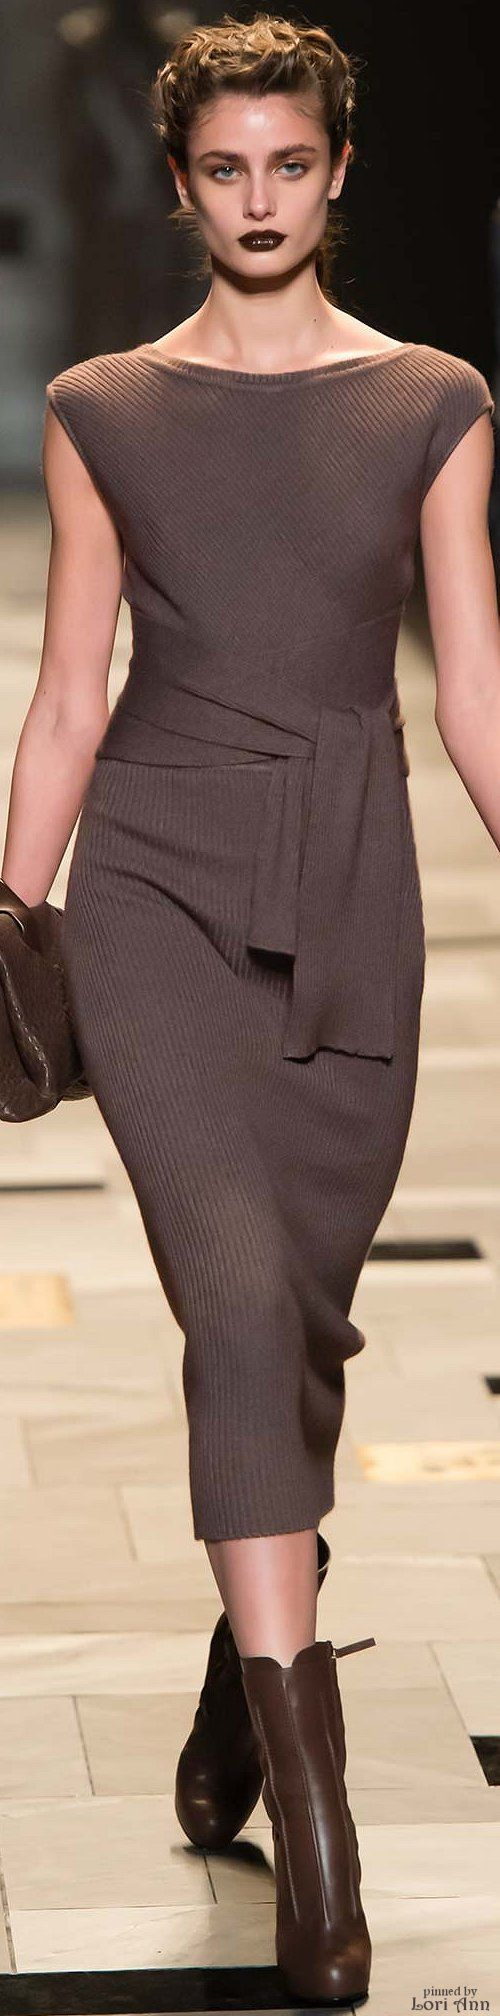 Love the dress, colour not attractive for most colour types Winter white would look so awesome. Trussardi Fall 2015 RTW